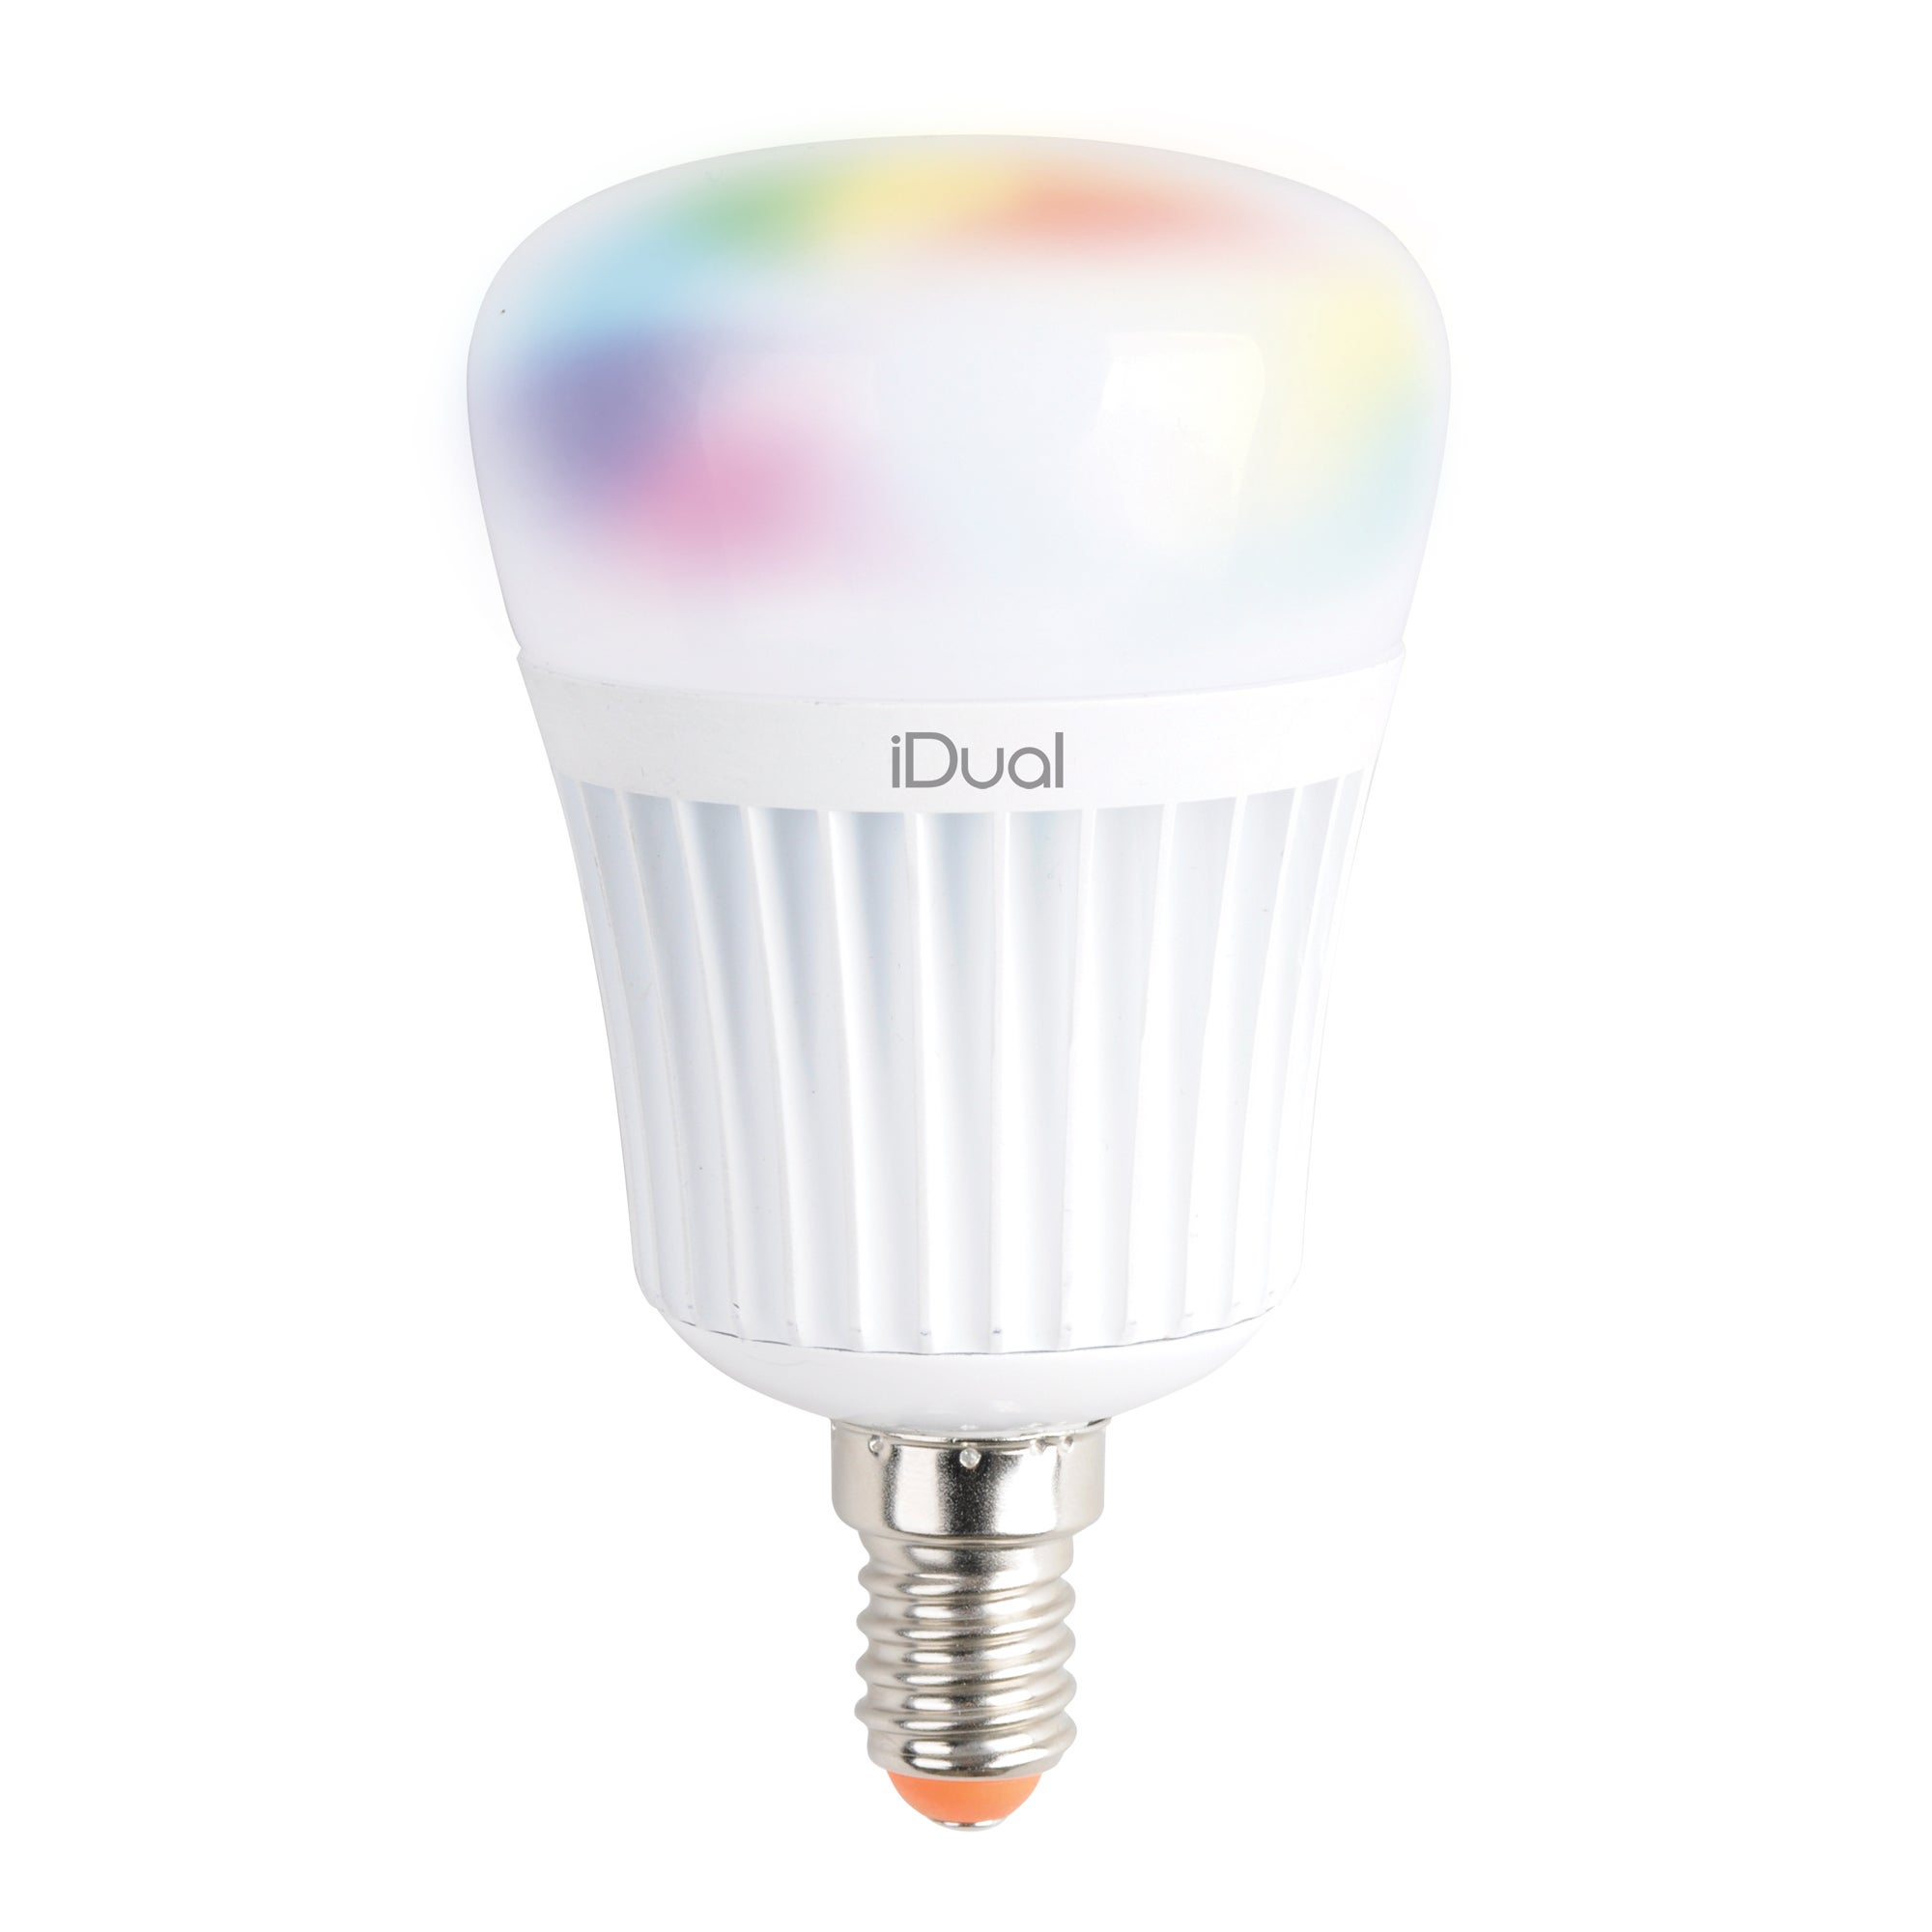 Image of iDual 40 Watt Small Edison Screw LED Bulb Pack of 2 with Remote Control White